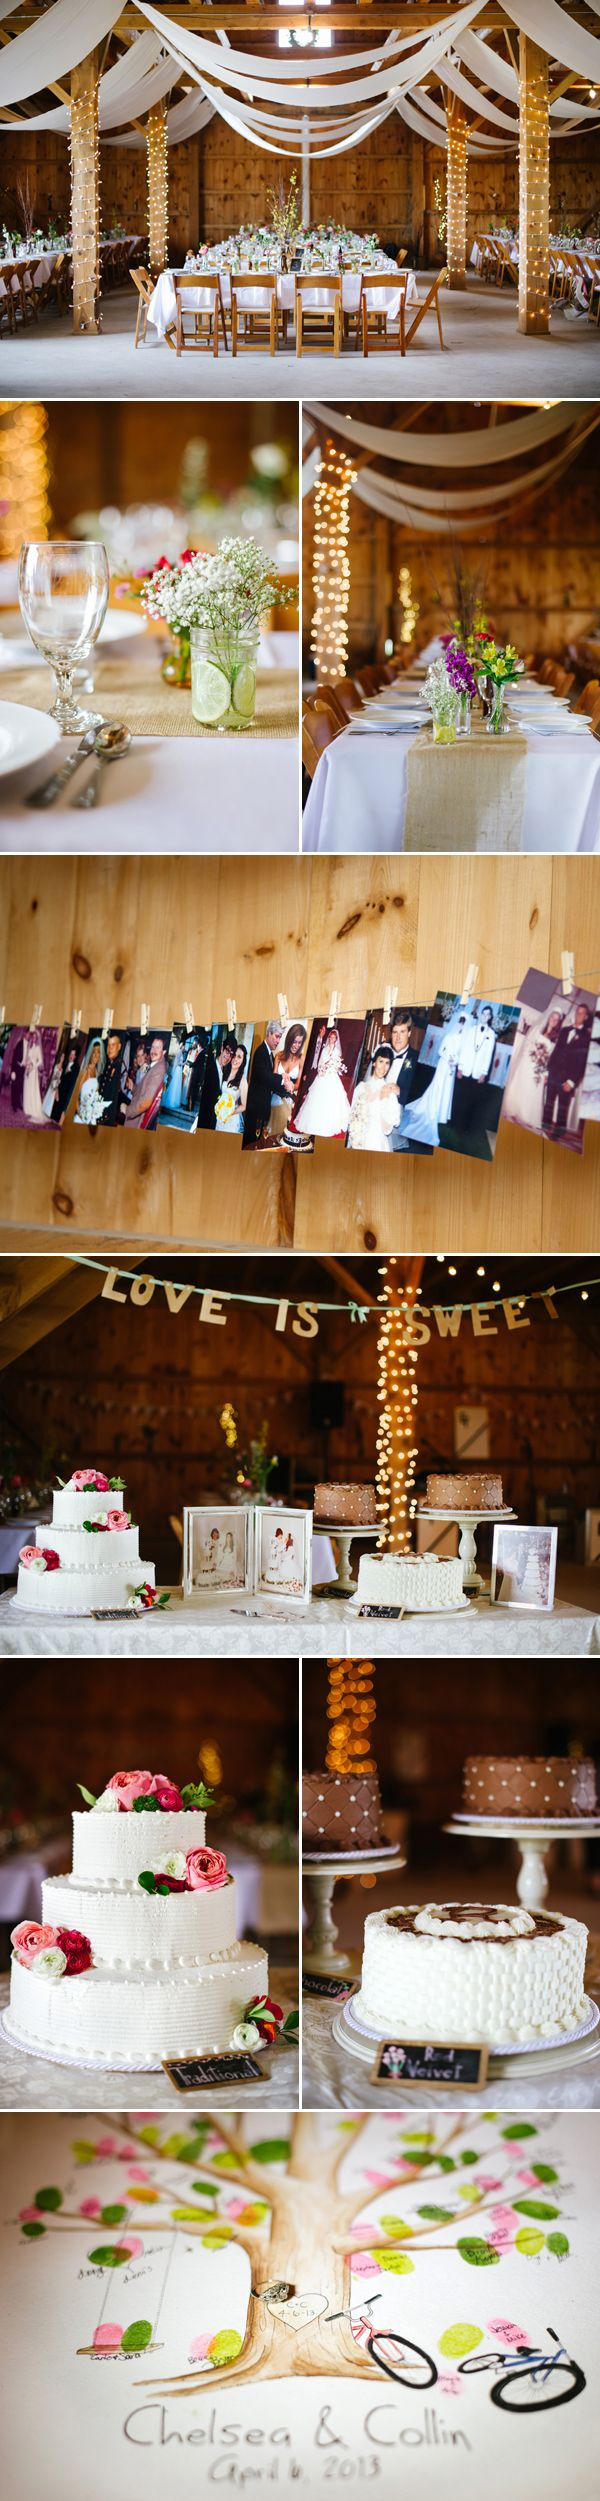 Chelsea & Collin's Summer Camp Barn Wedding from Maria Hibbs